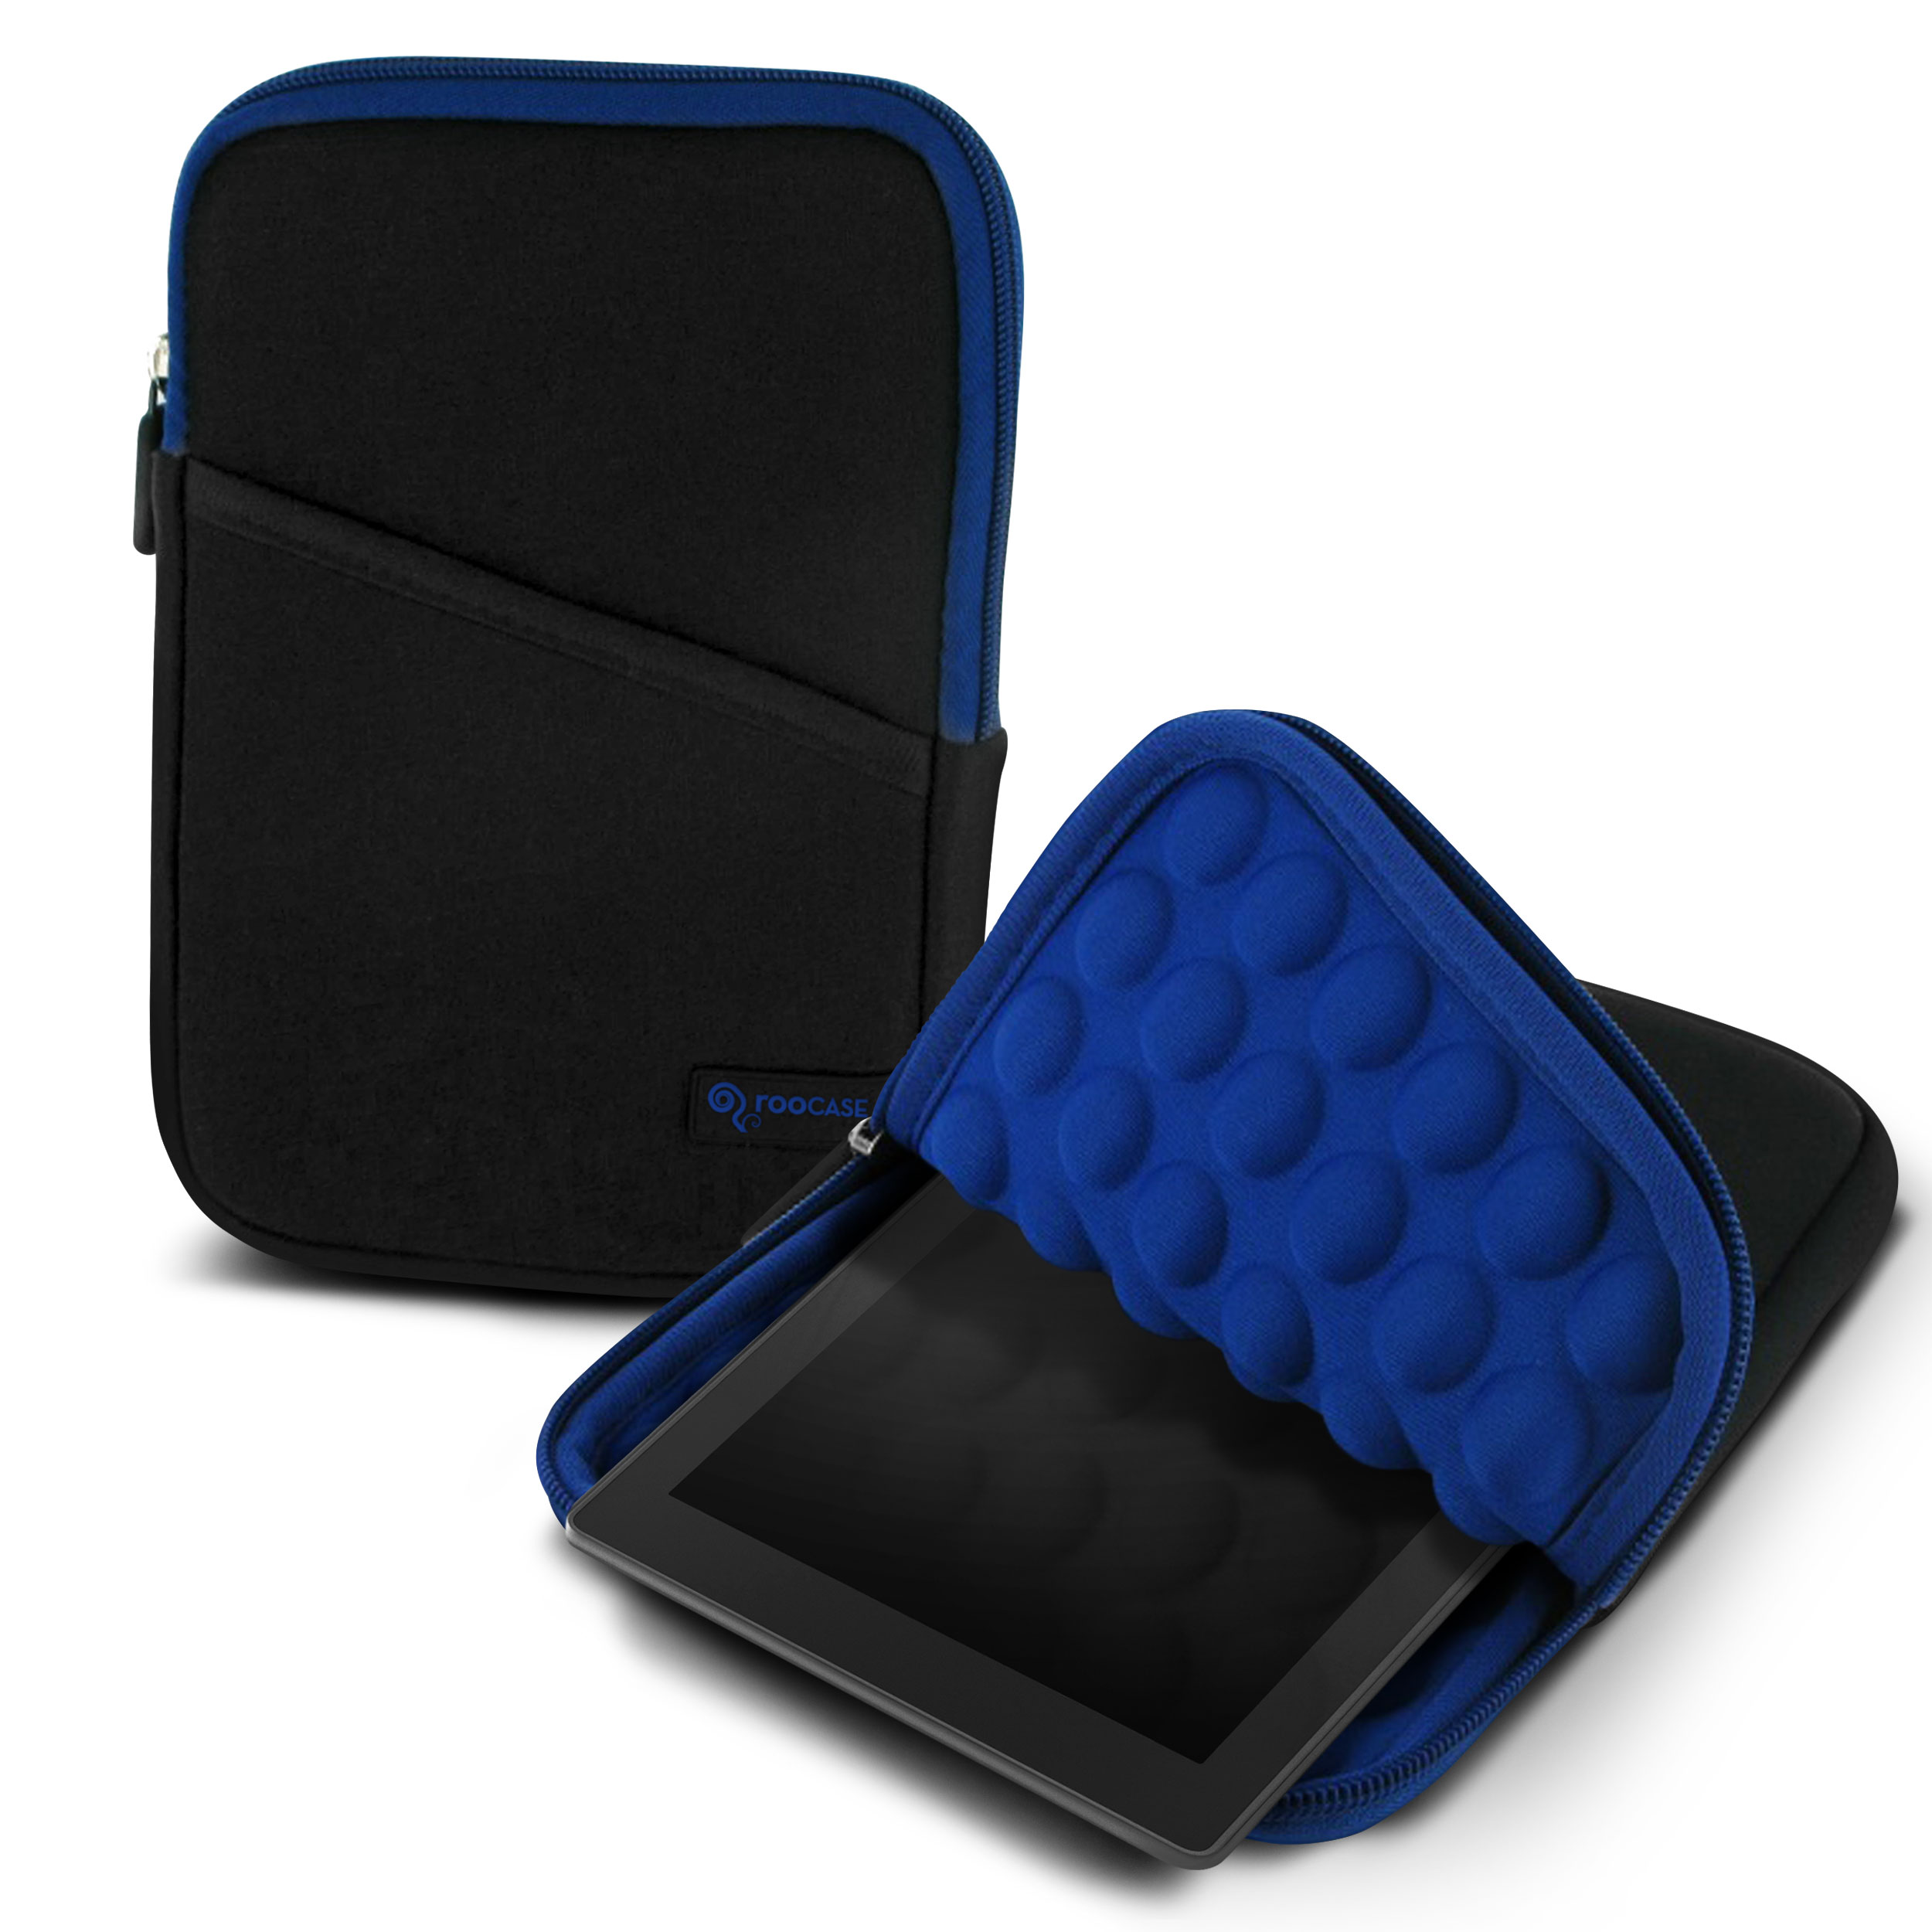 "roocase Bubble Sleeve Carrying Universal 7"" Tablet Case for iPad Mini Retina / Galaxy Tab 3 4 7.0 8.0 / Nexus 7 2013 / Asus MeMO Pad 7 ME173 ME176CX / HP 7 Slate Plus / Dell Venue Pro 7.0 8.0, Blue"